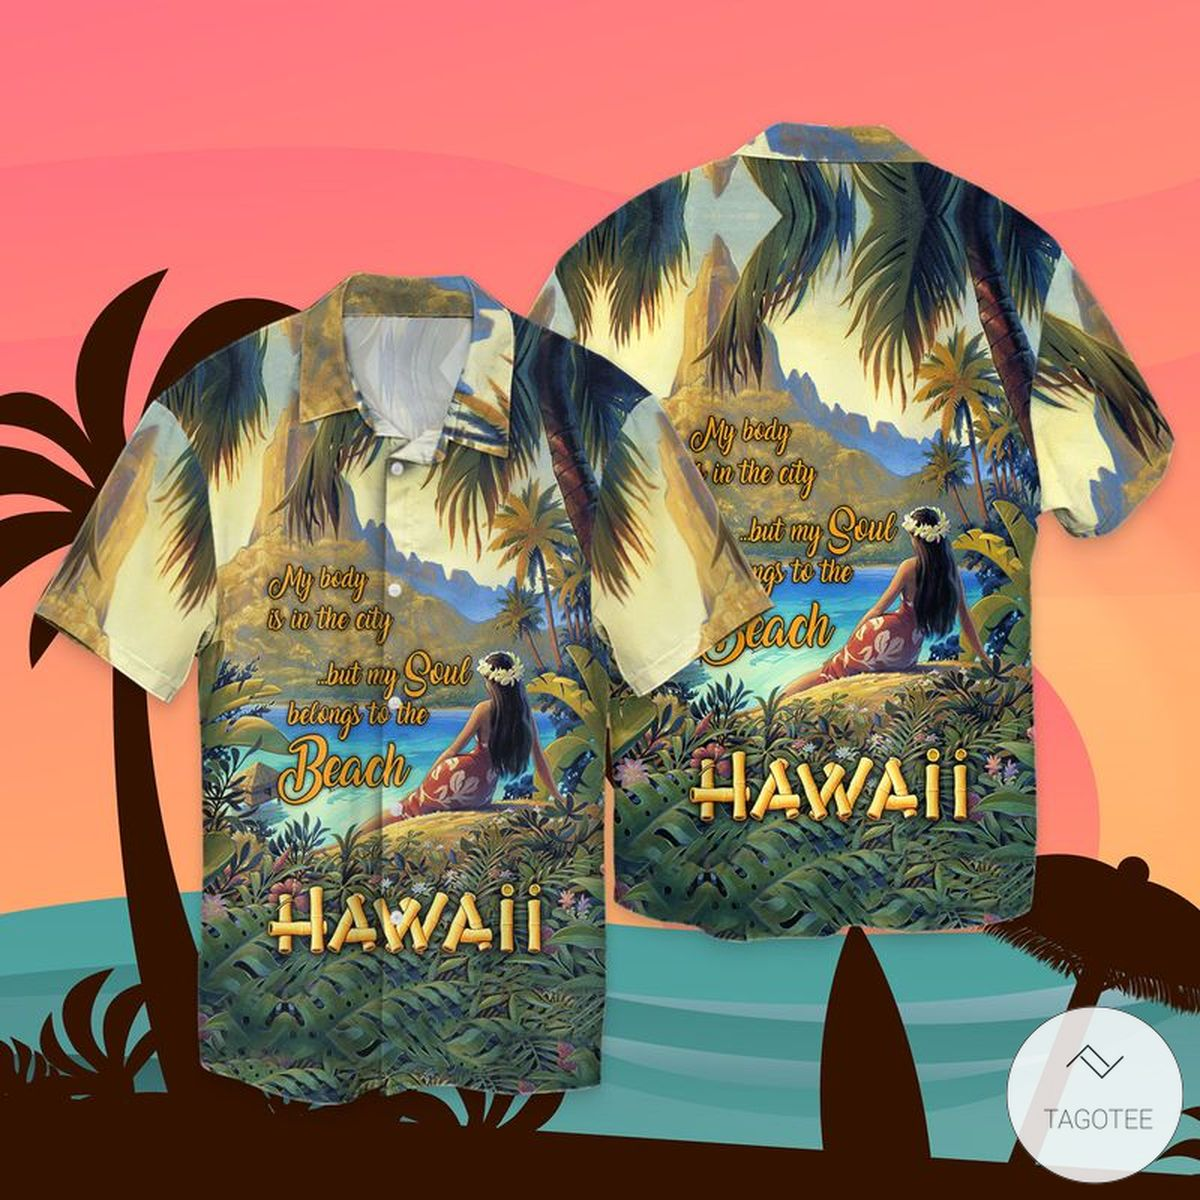 My Body Is In The City But My Soul Belong To The Beach Hawaiian Shirt